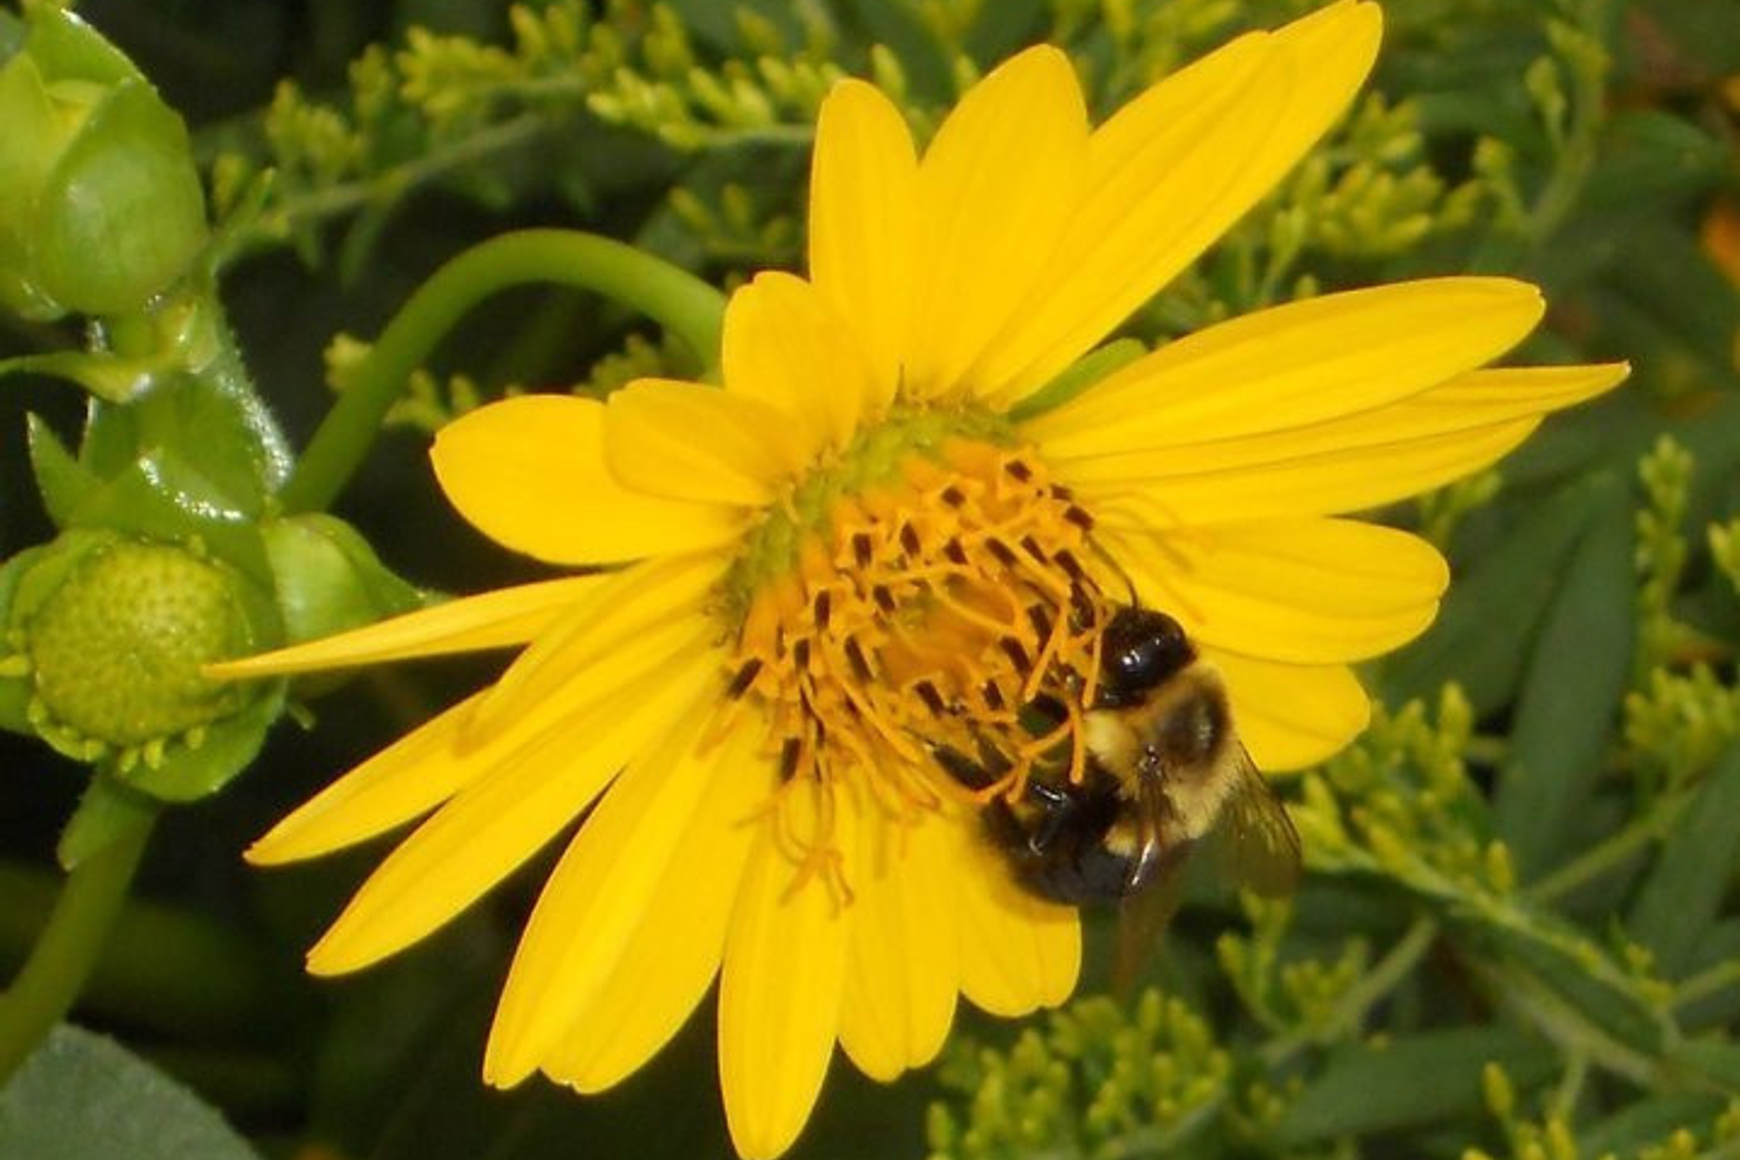 A bee on a yellow, daisy-like flower